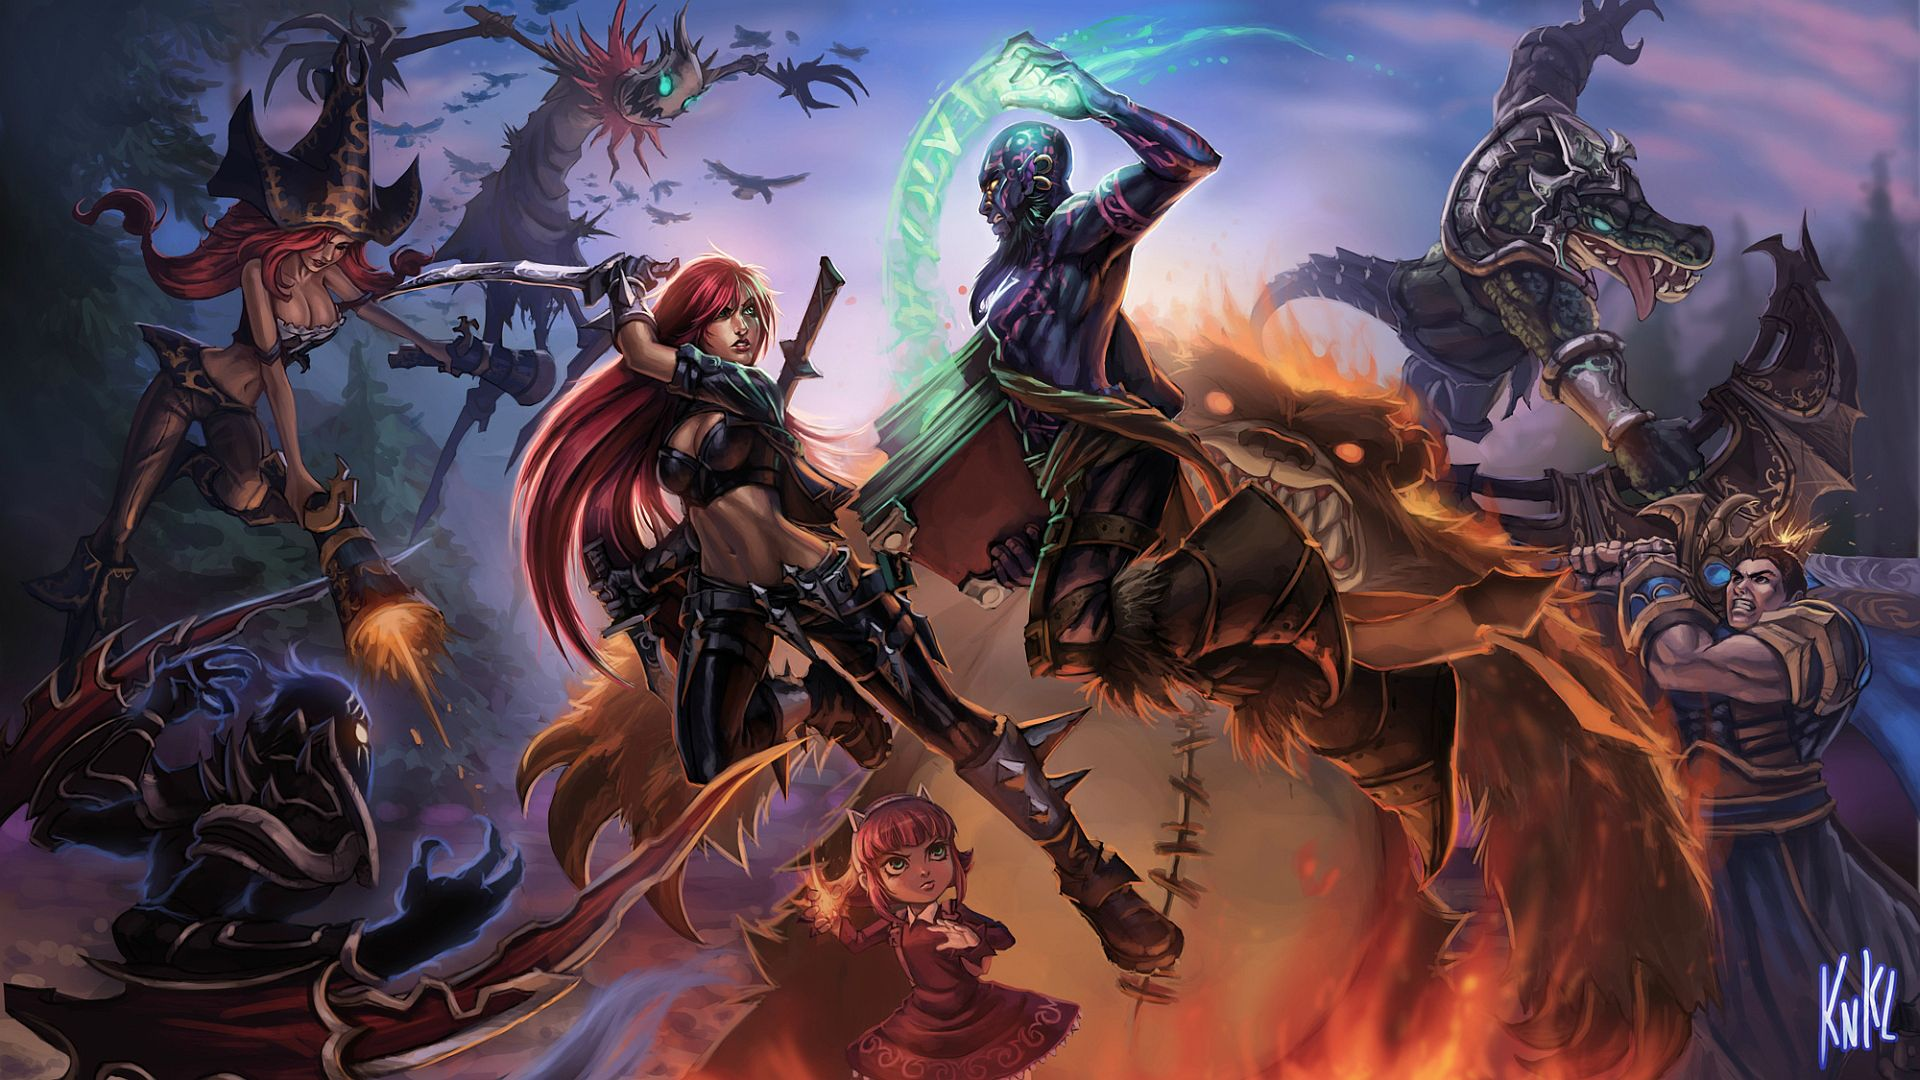 League of legends lol wallpapers best wallpapers free league of legends lol wallpaper voltagebd Images